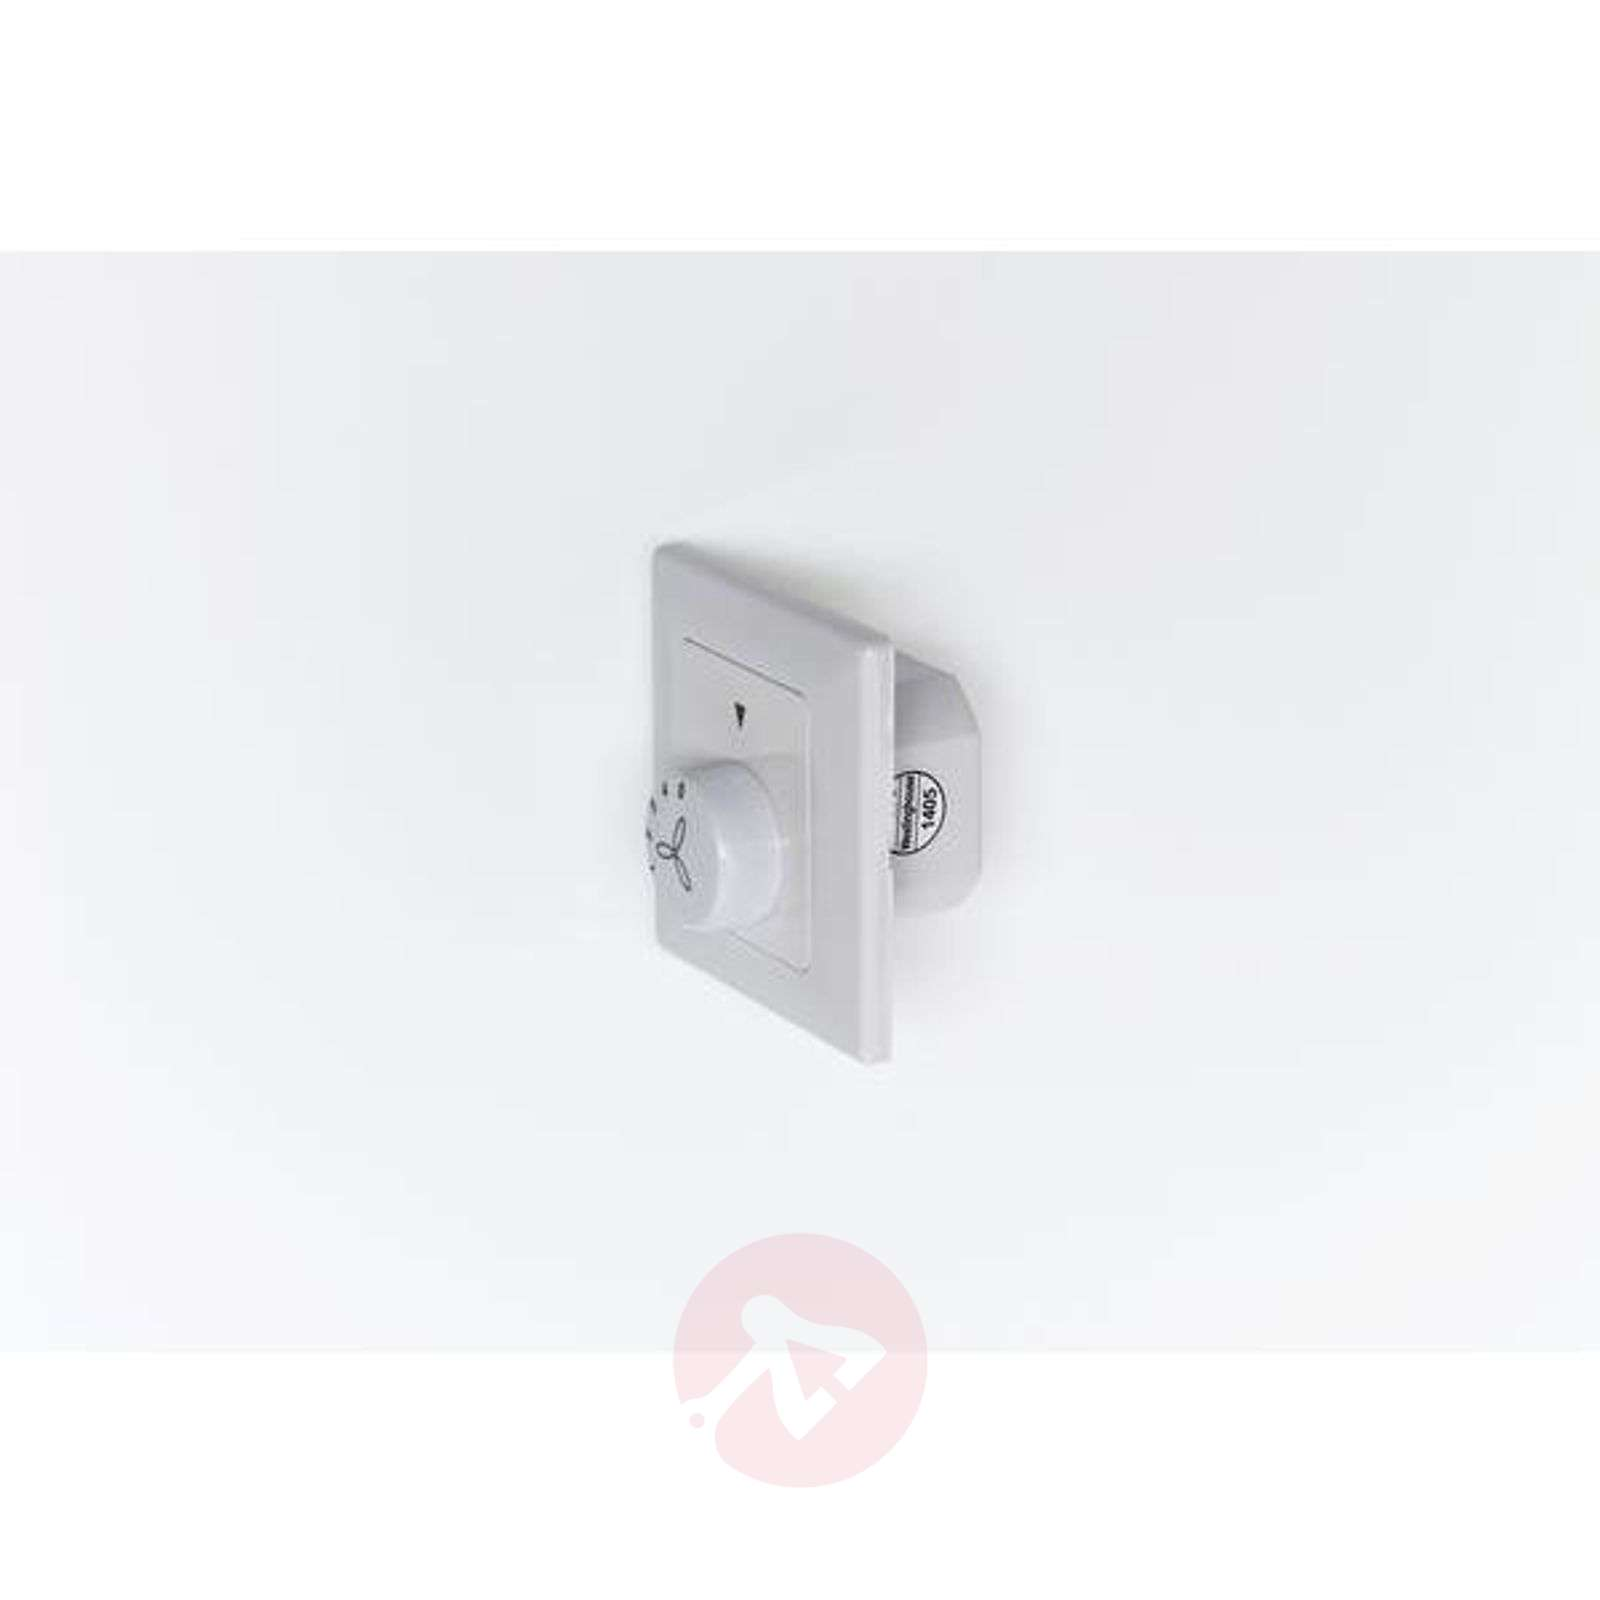 Wall switch for ceiling fans, four speed levels-9602073-02